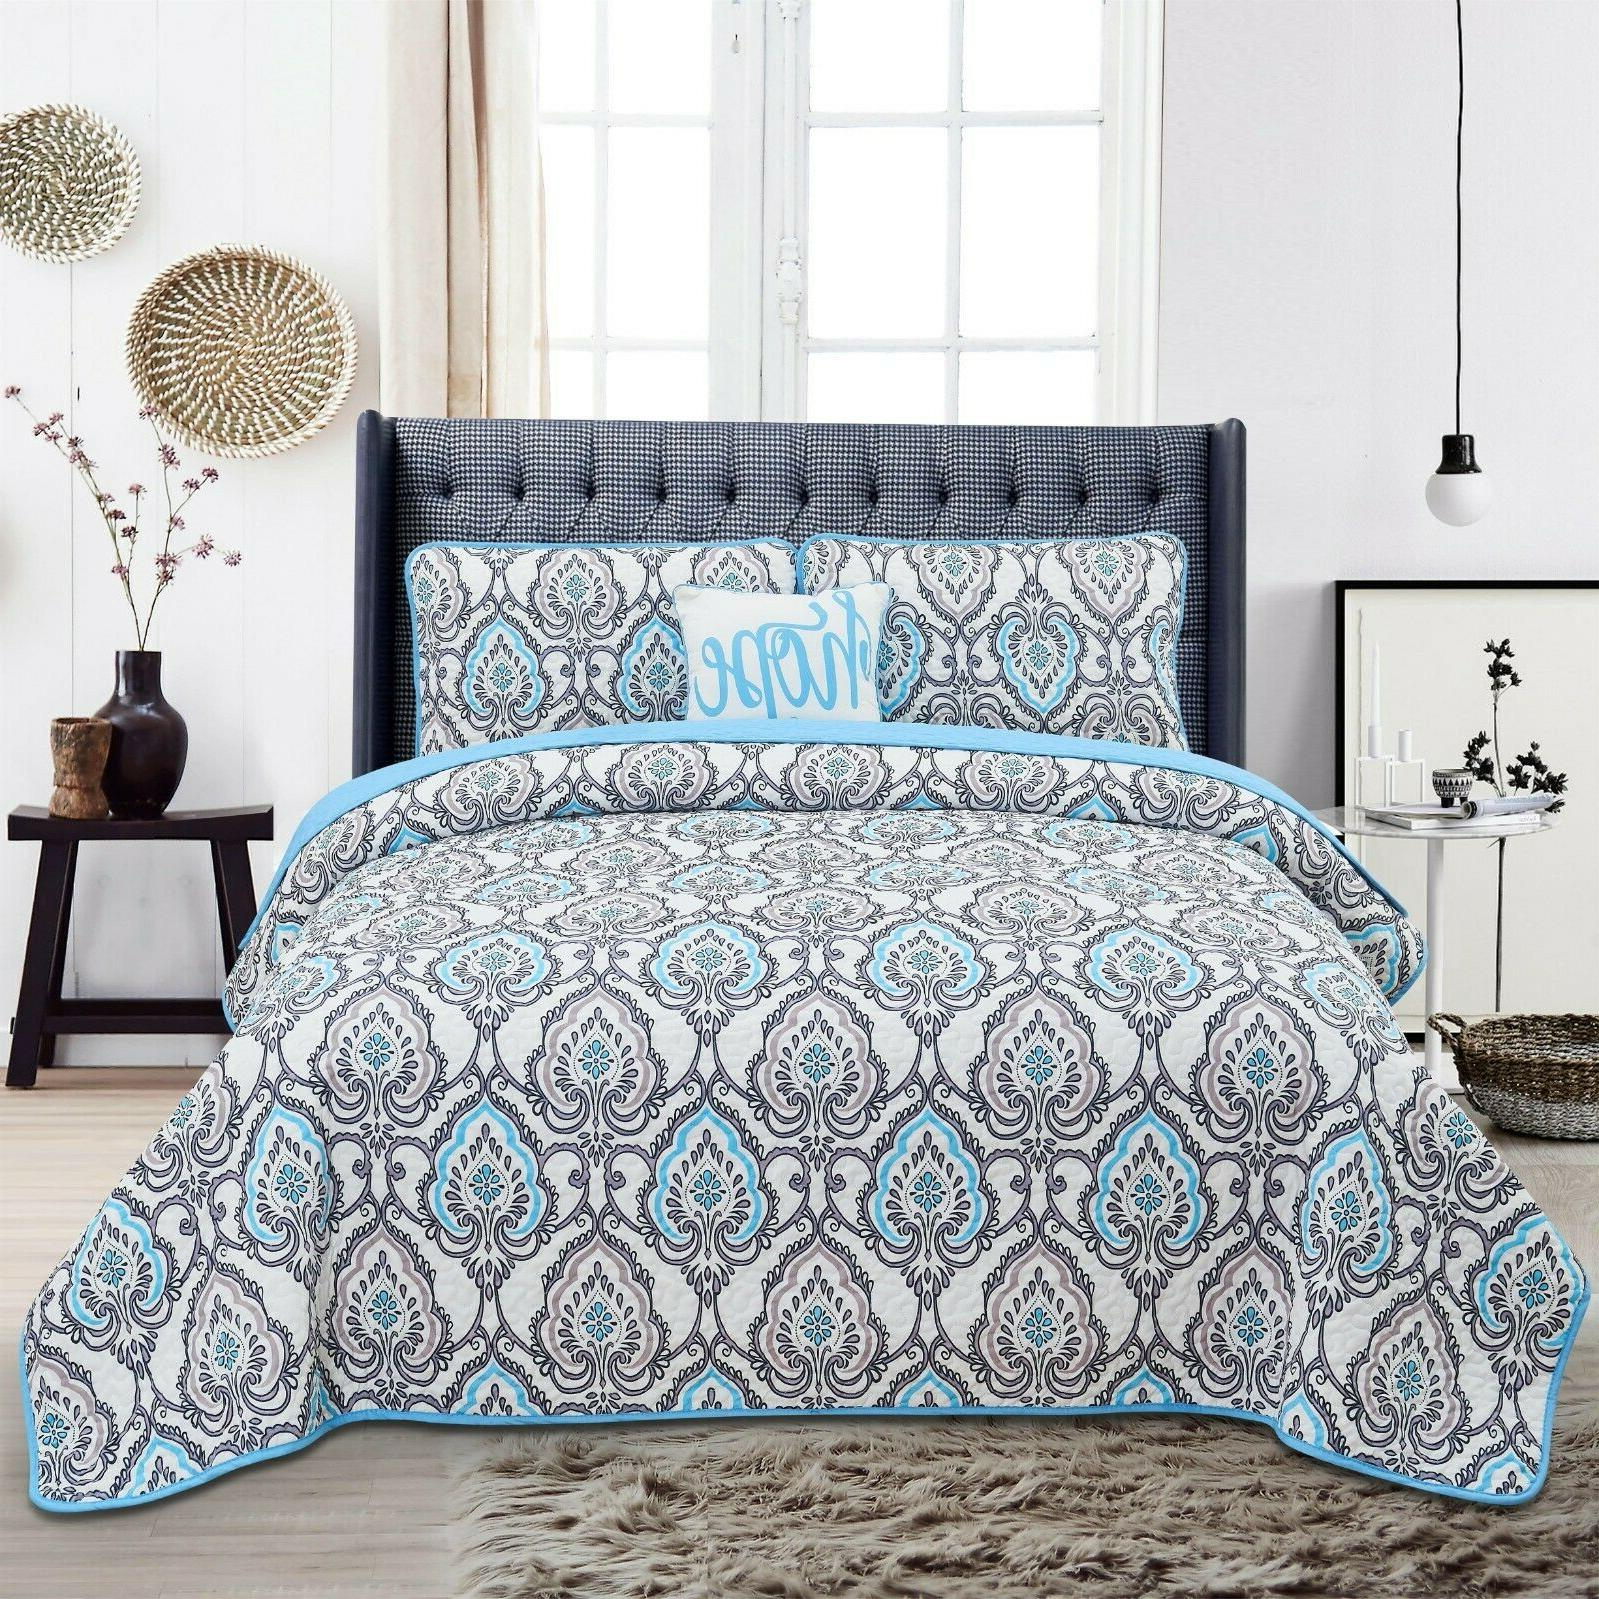 4 Piece Quilted Bedding Set Printed Pattern King Queen Quilt